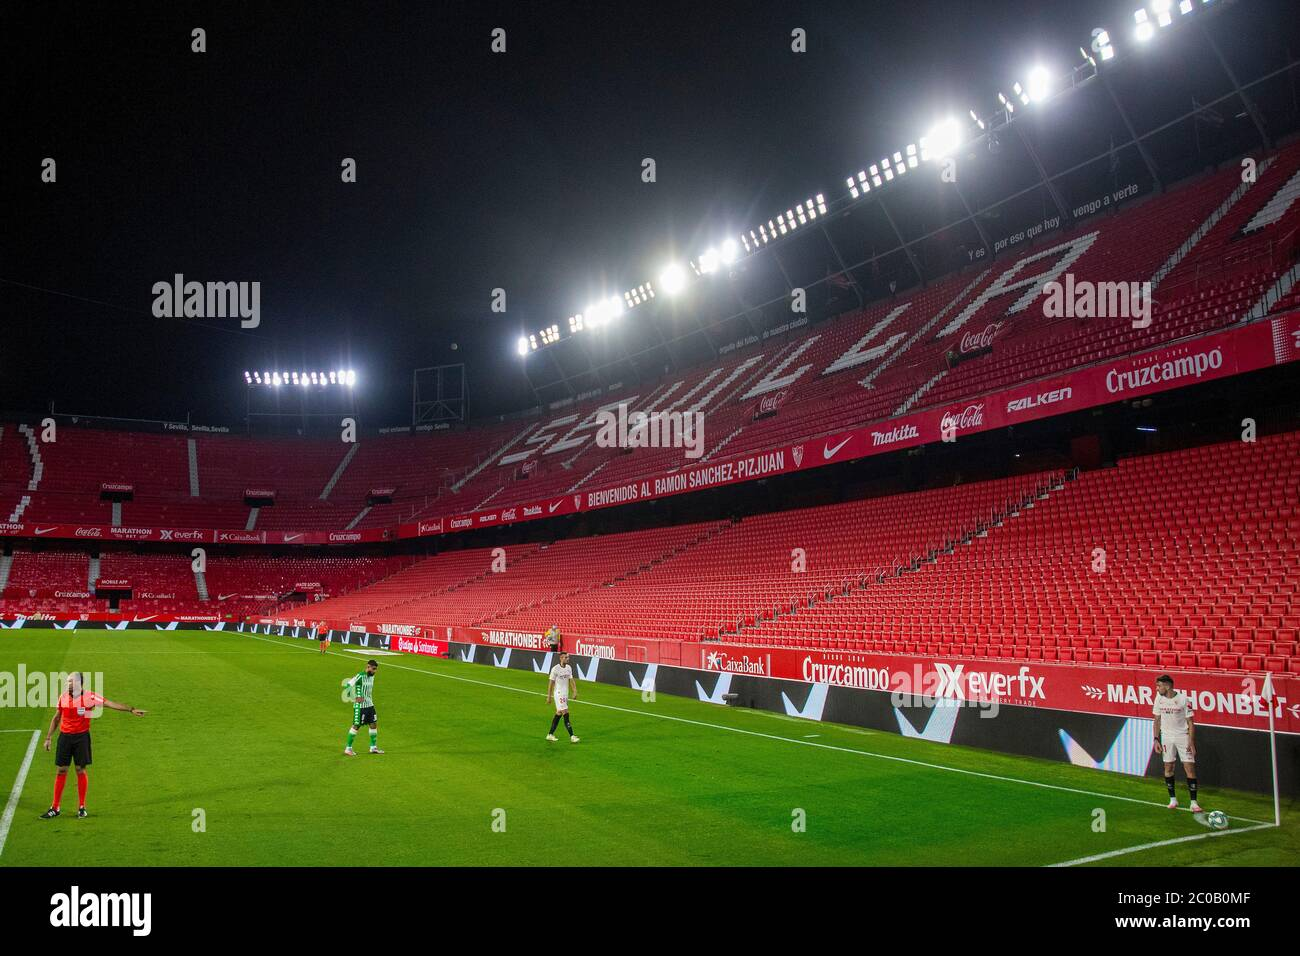 Sevilla 11 06 2020 Primera Division Spanish League Laliga Ramon Sanchez Pizjuan Stadium Sevilla Fc Real Betis Resumption Of Football Matches In Spain After Three Months Postponed By The Golbal Pandemic Of Covid 19 Game